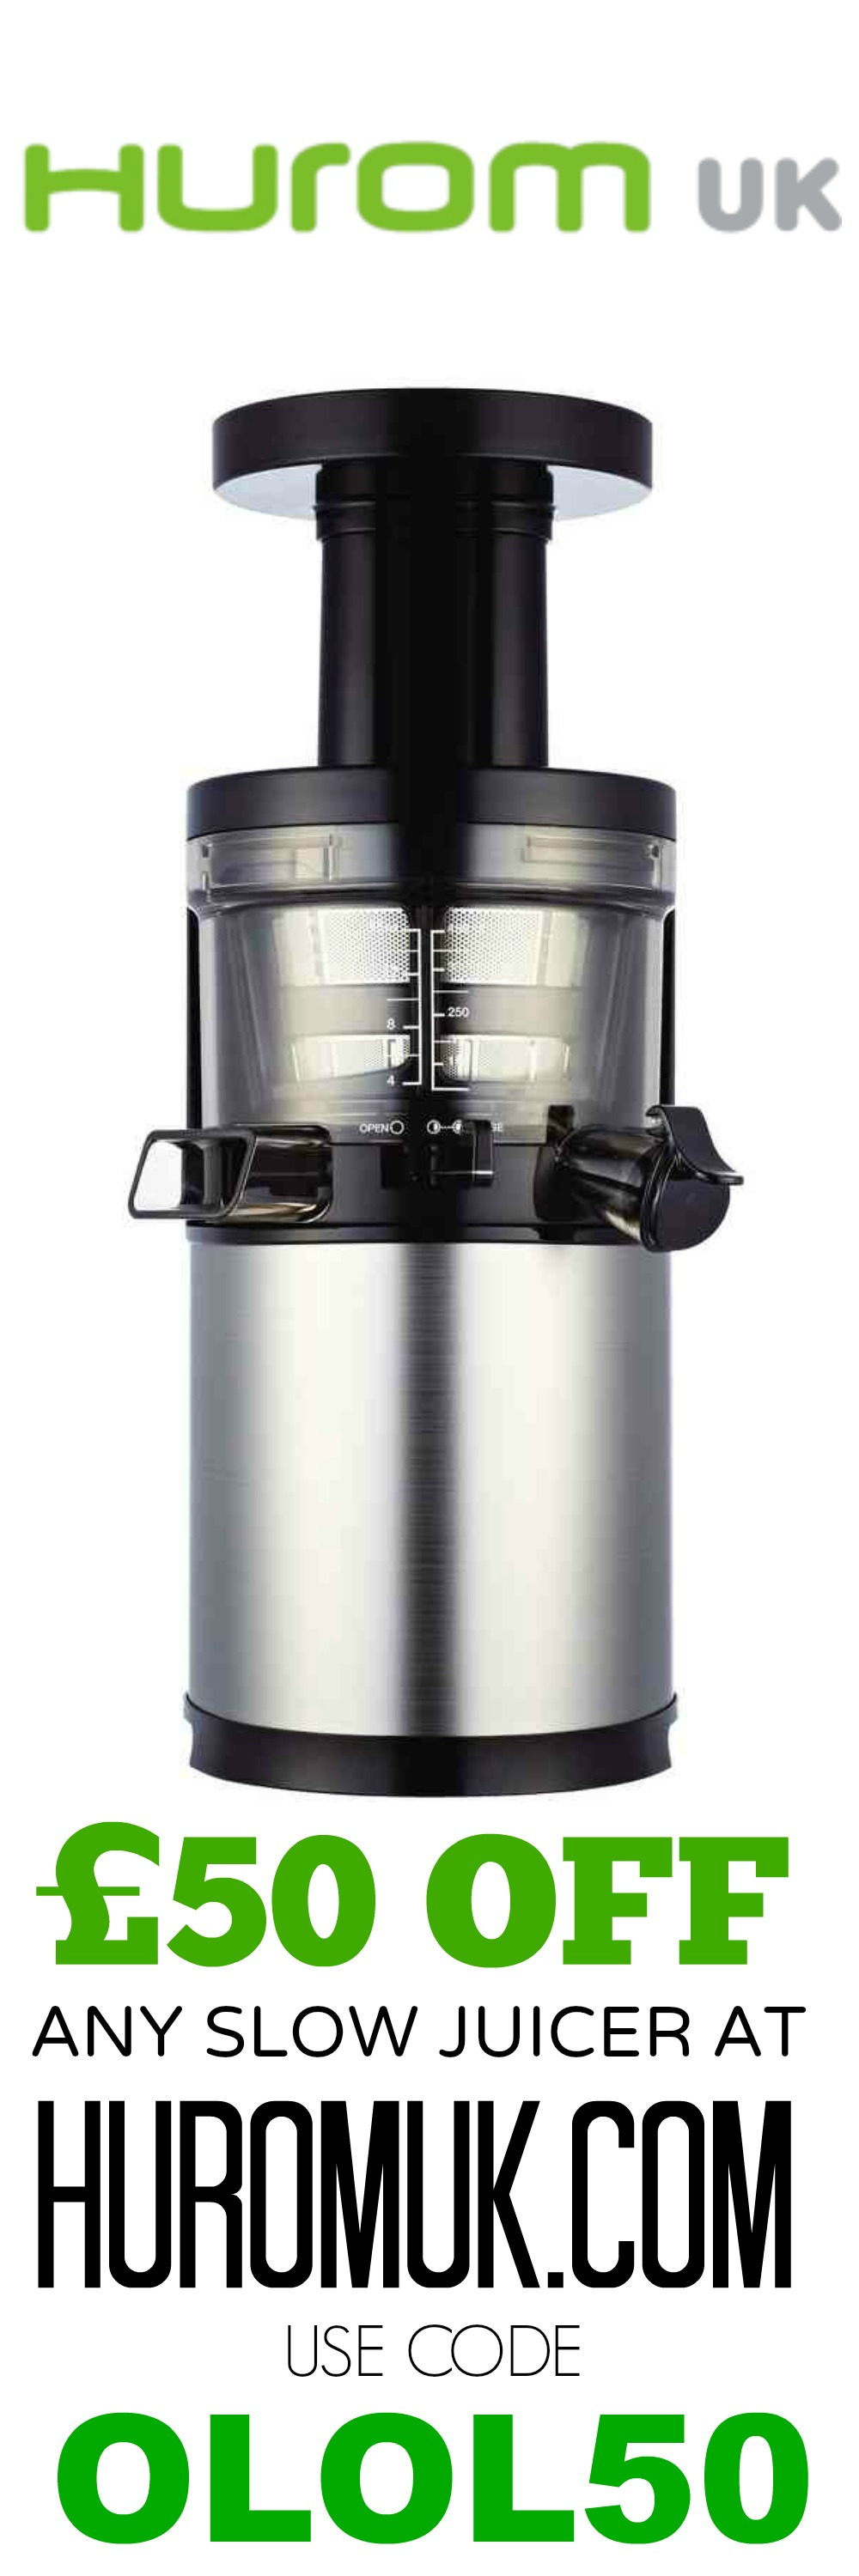 SAVE £50 ON A HUROM JUICER AT HUROMUK.COM USE CODE OLOL50